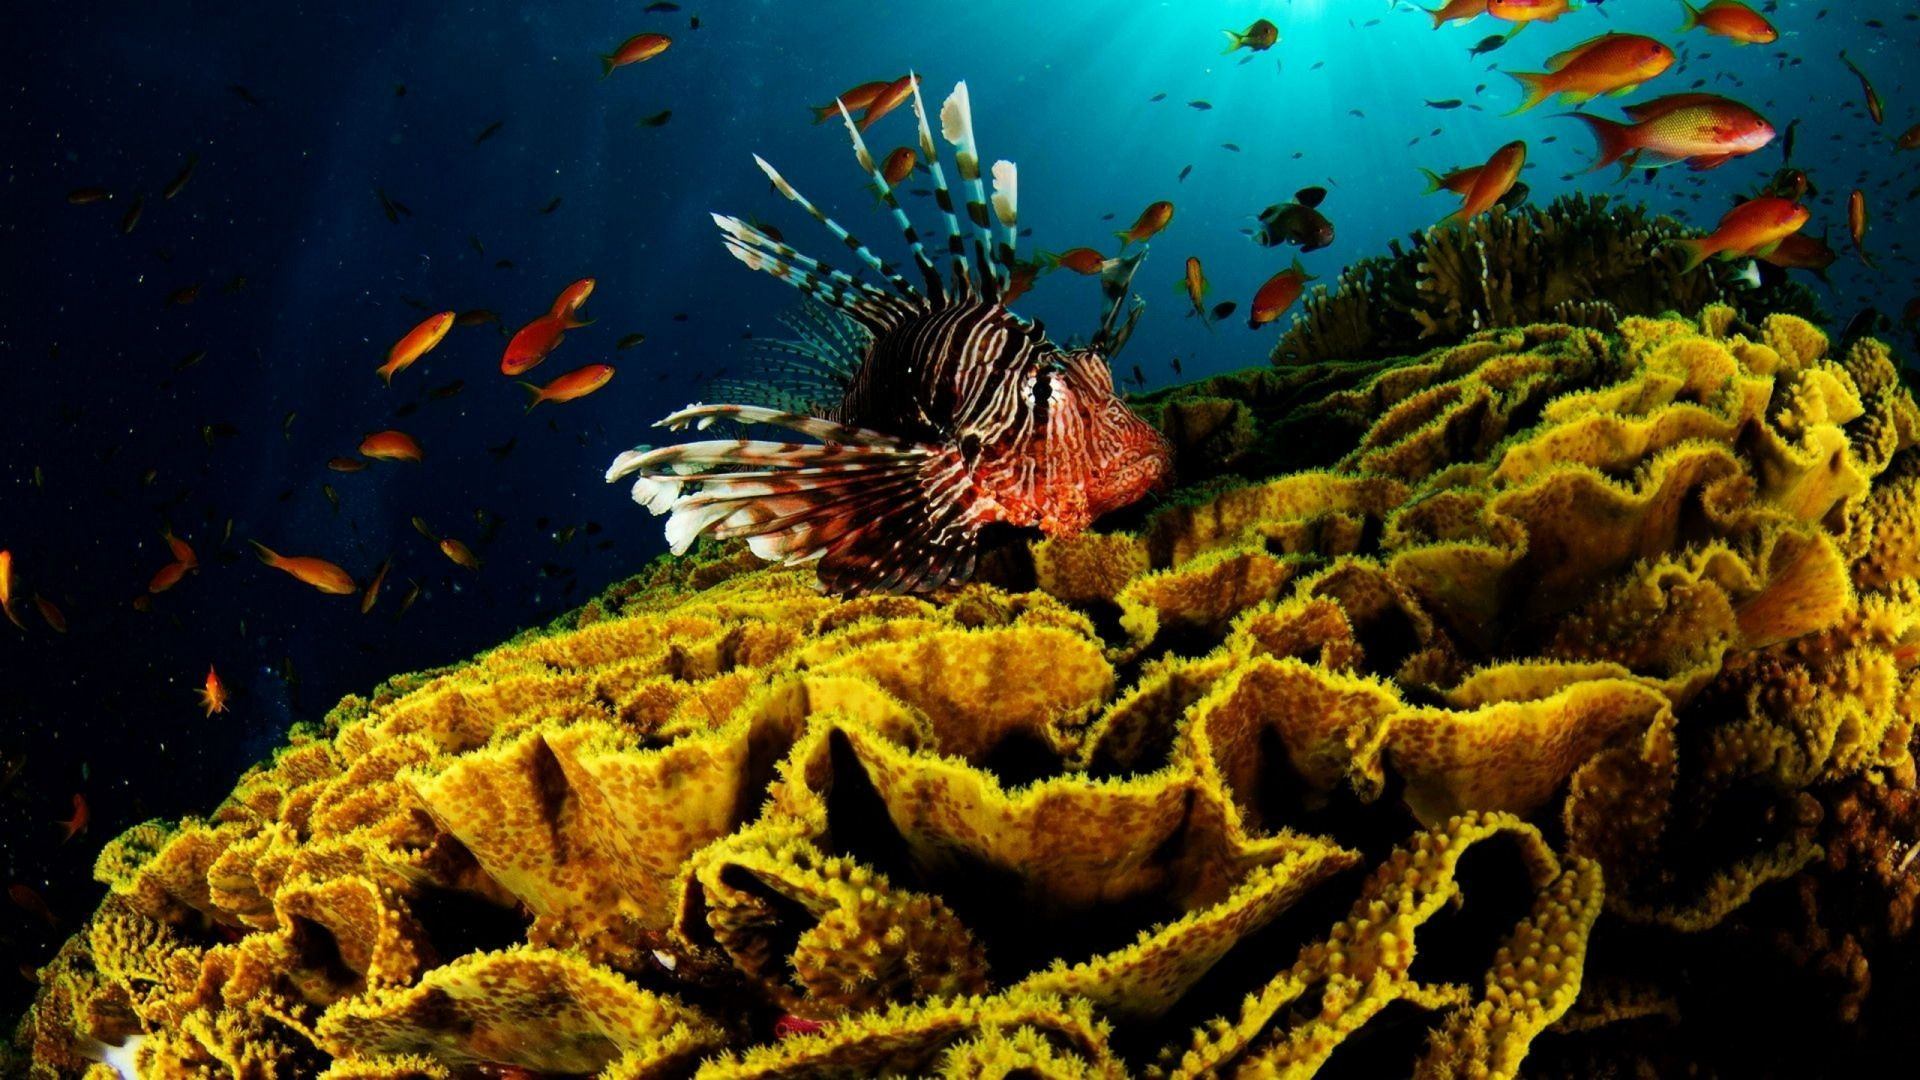 wallpaper.wiki-Photos-coral-reef-fish-download-PIC-WPD009839